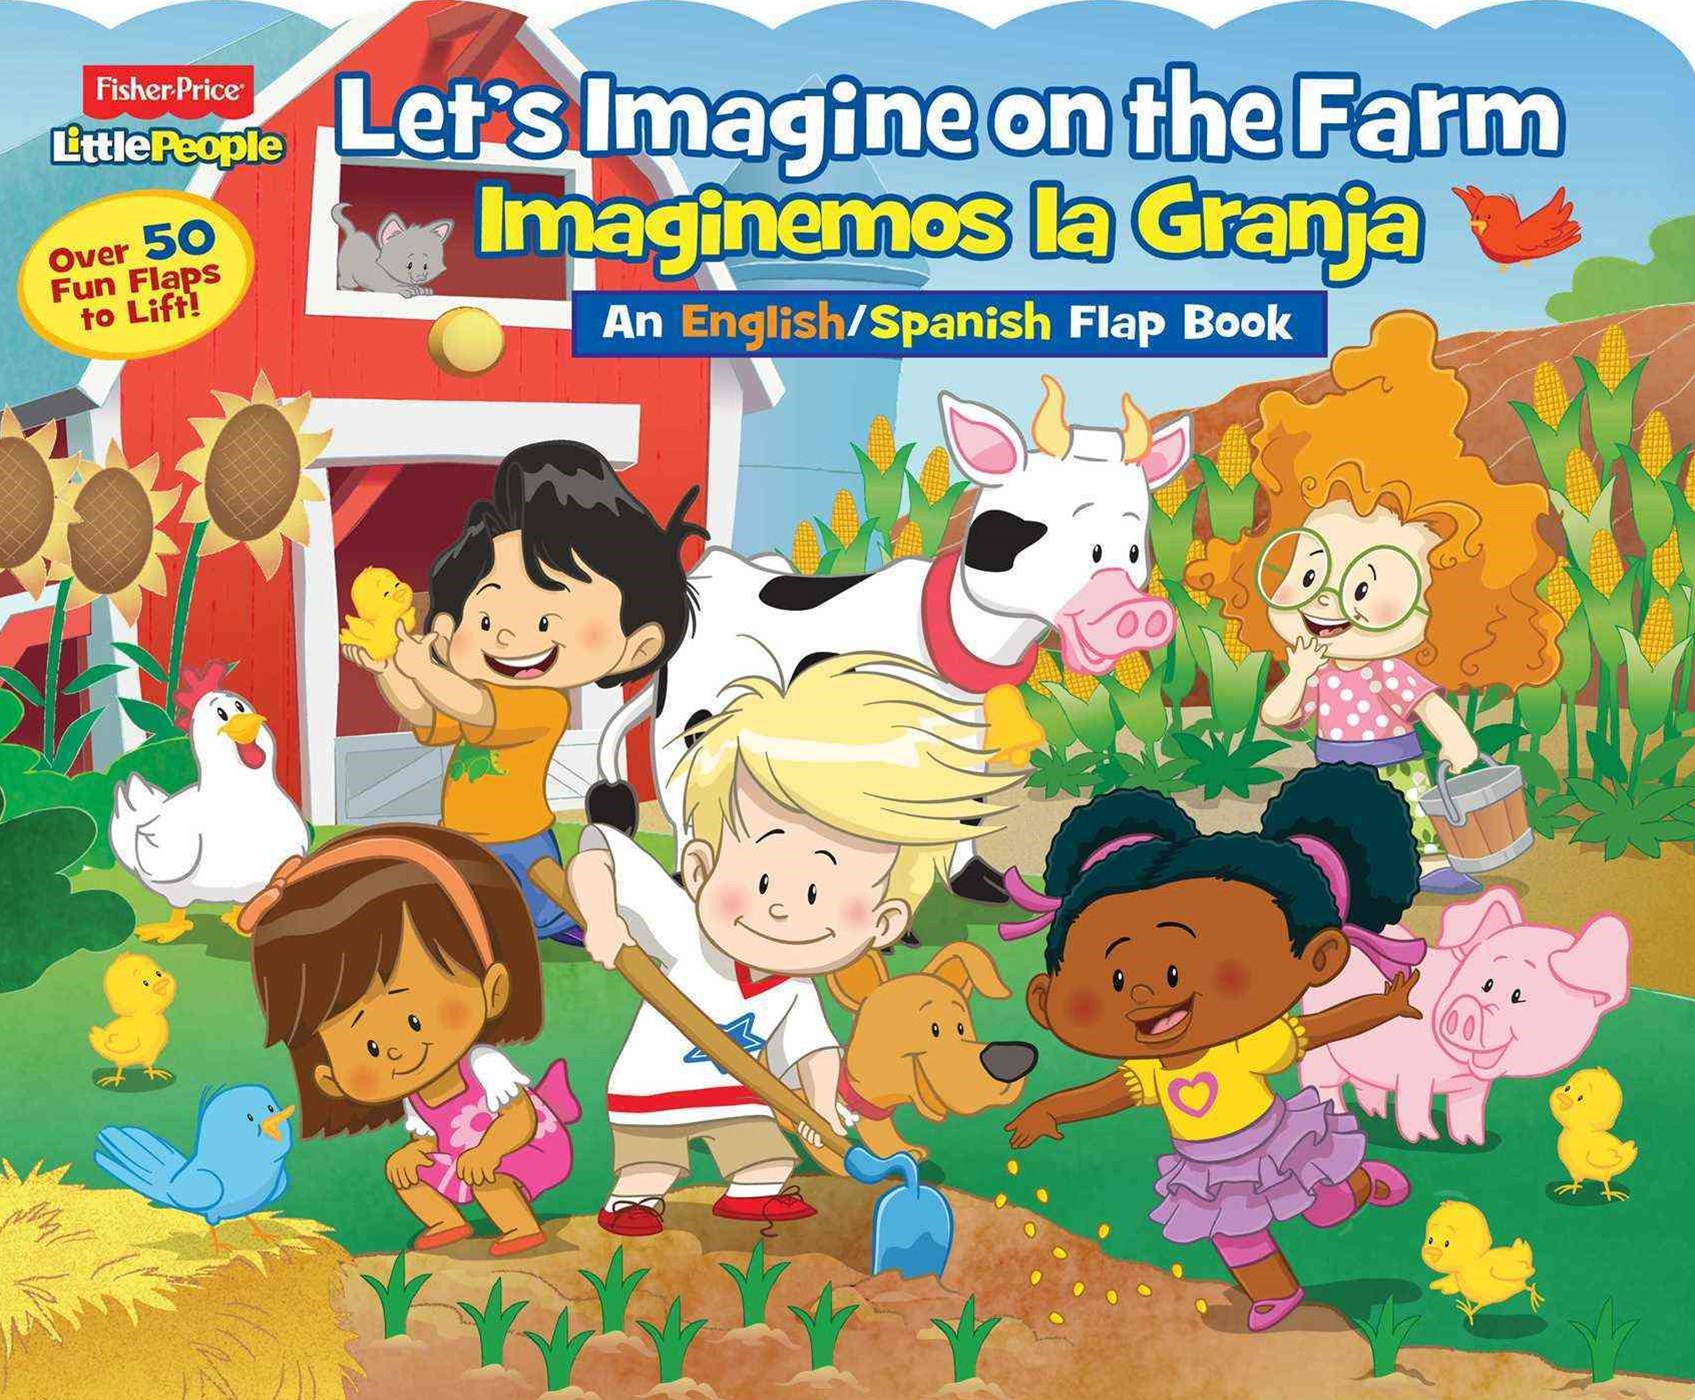 Fisher-Price Little People Let's Imagine at the Farm / Imaginemos la Granja